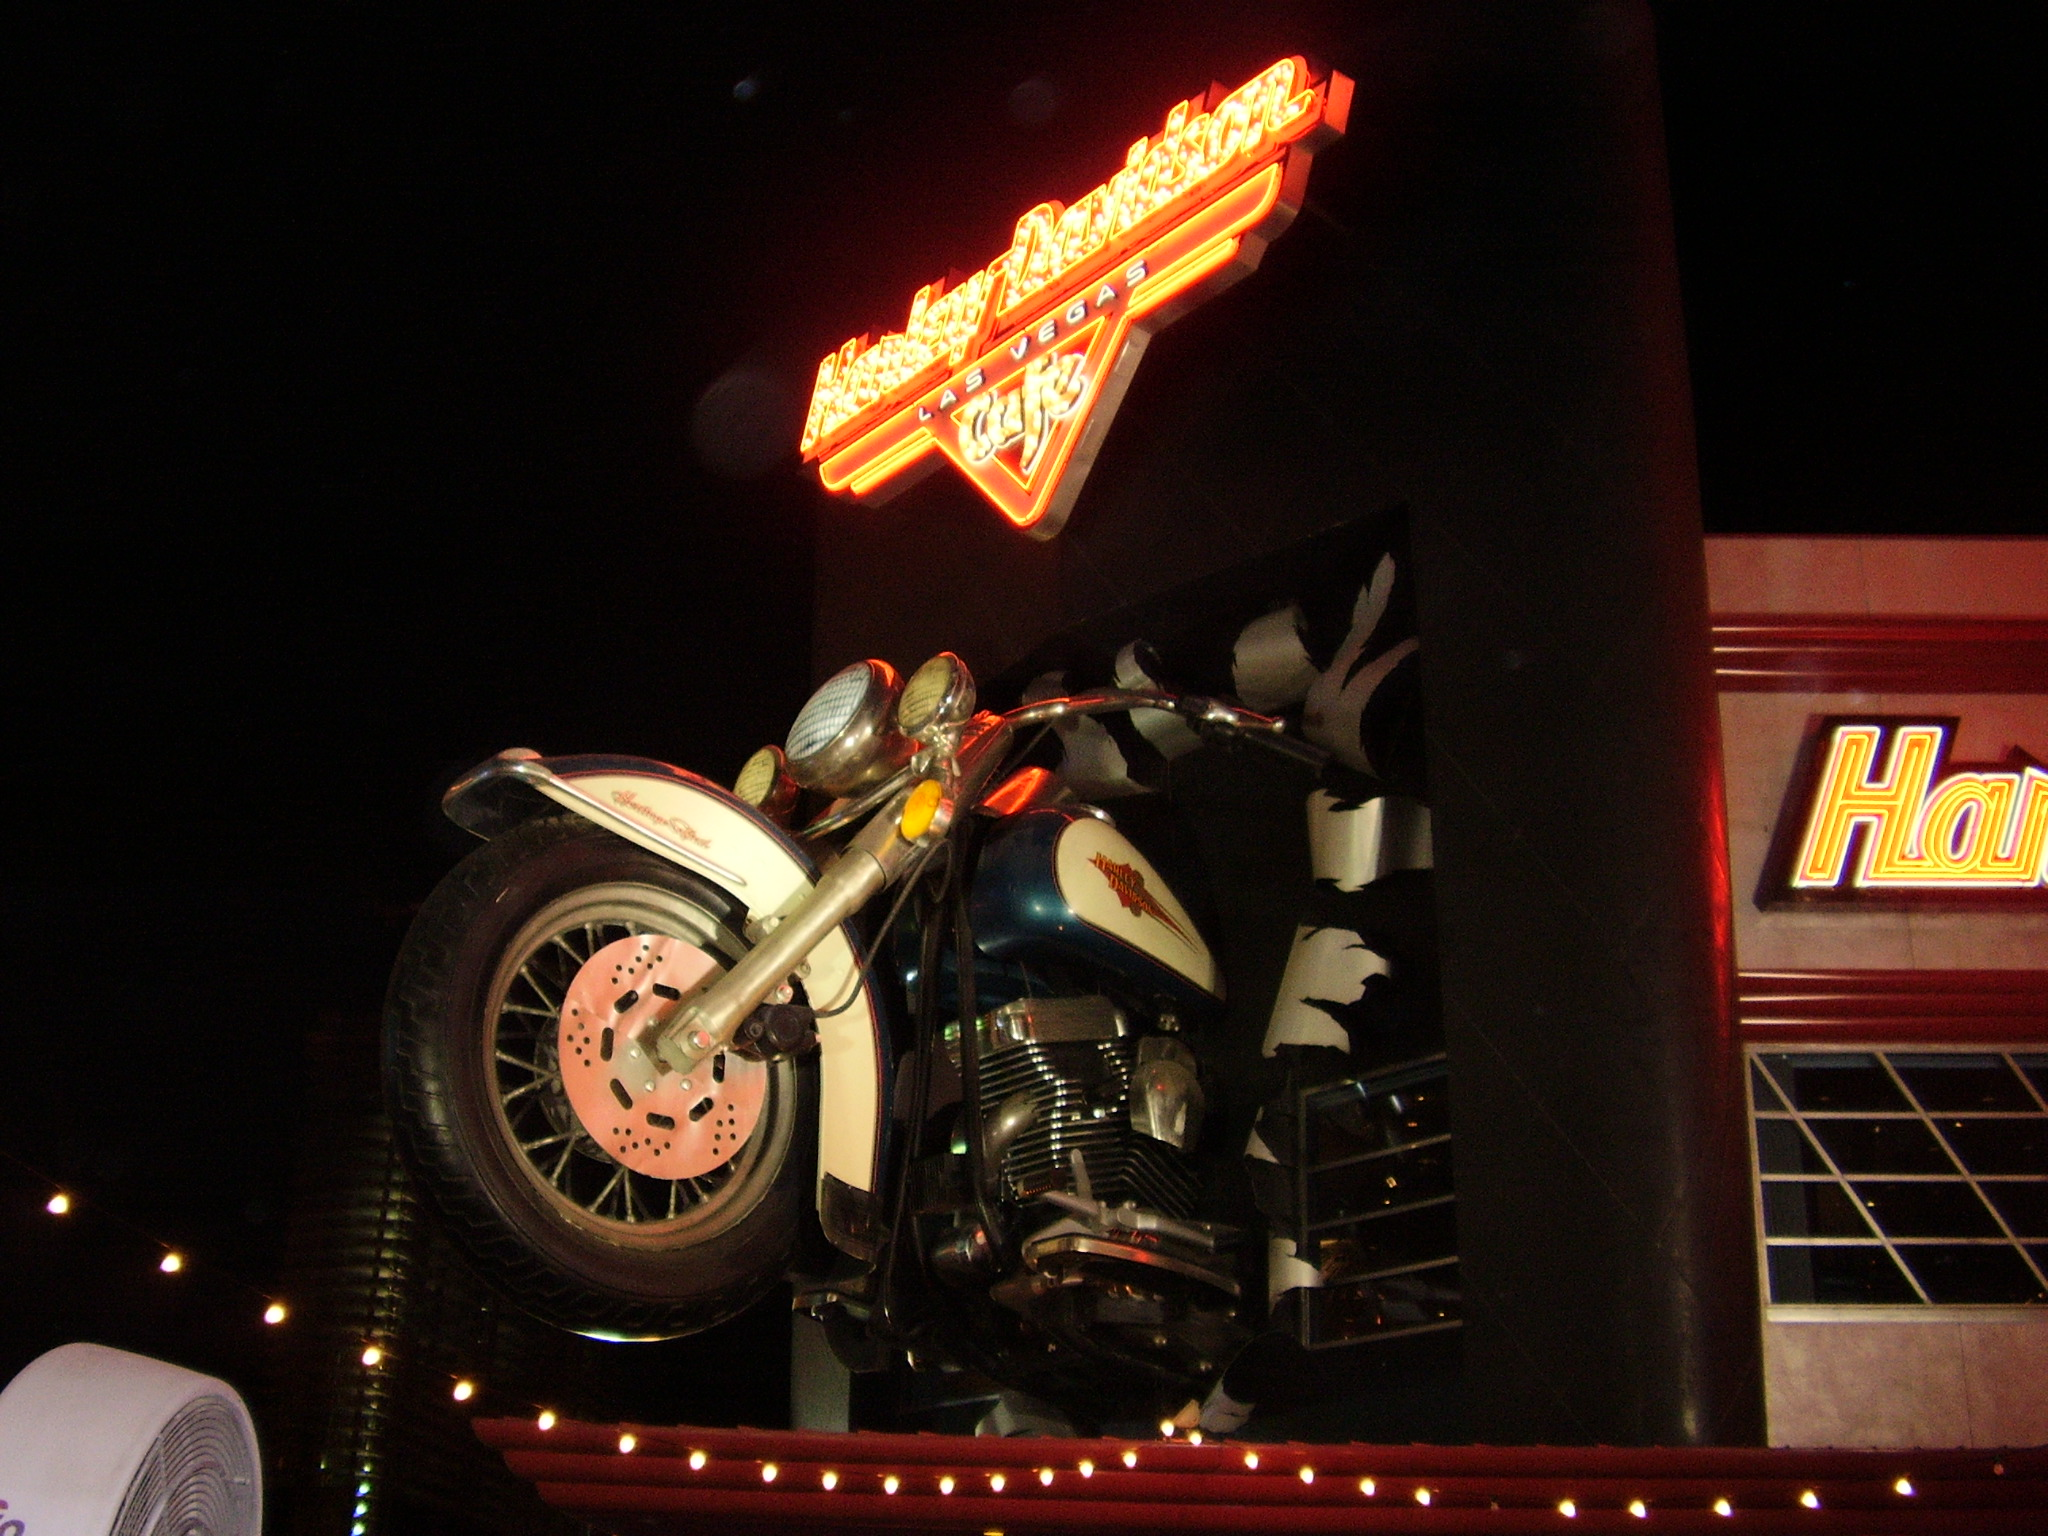 Harley Davidson Wikipedia 1986 Heritage Softail Wiring Diagram Cafe Theme Restaurant Located On The Las Vegas Strip